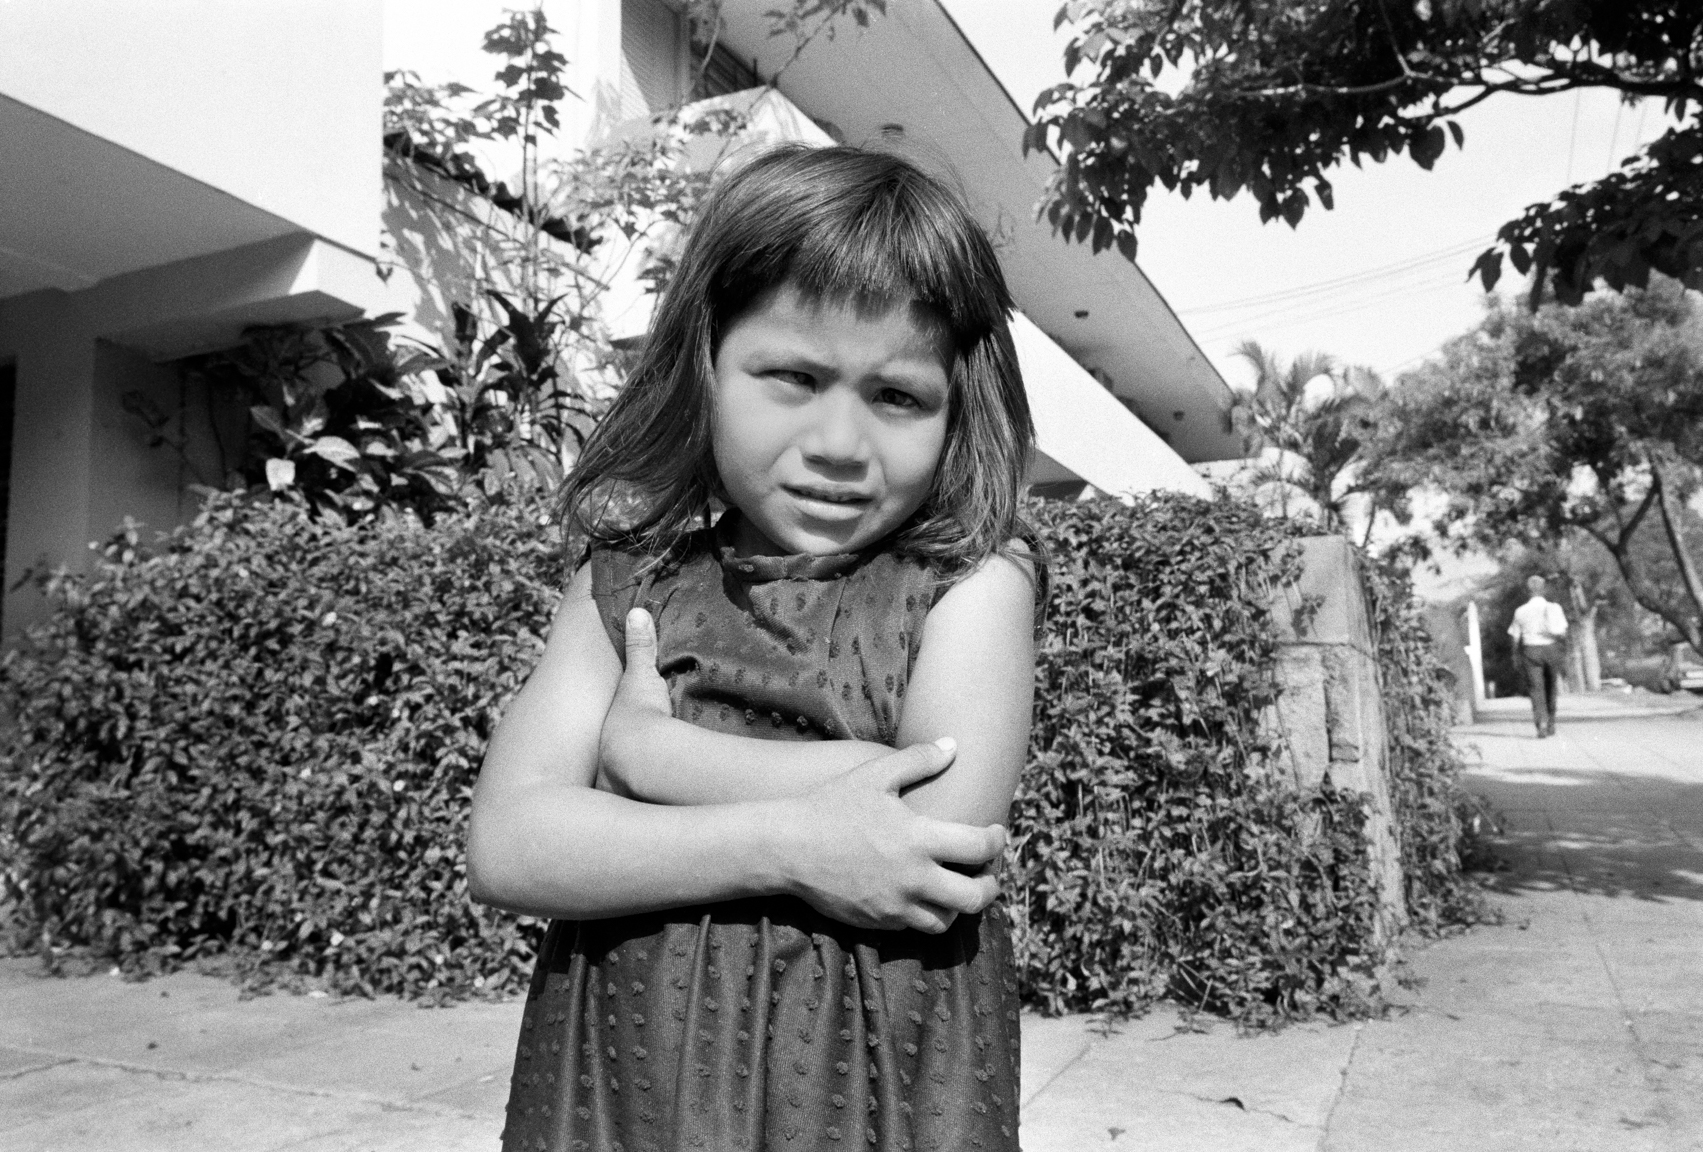 A girl stands on the sidewalk April 1983 in the Escalon neighborhood of San Salvador, El Salvador.